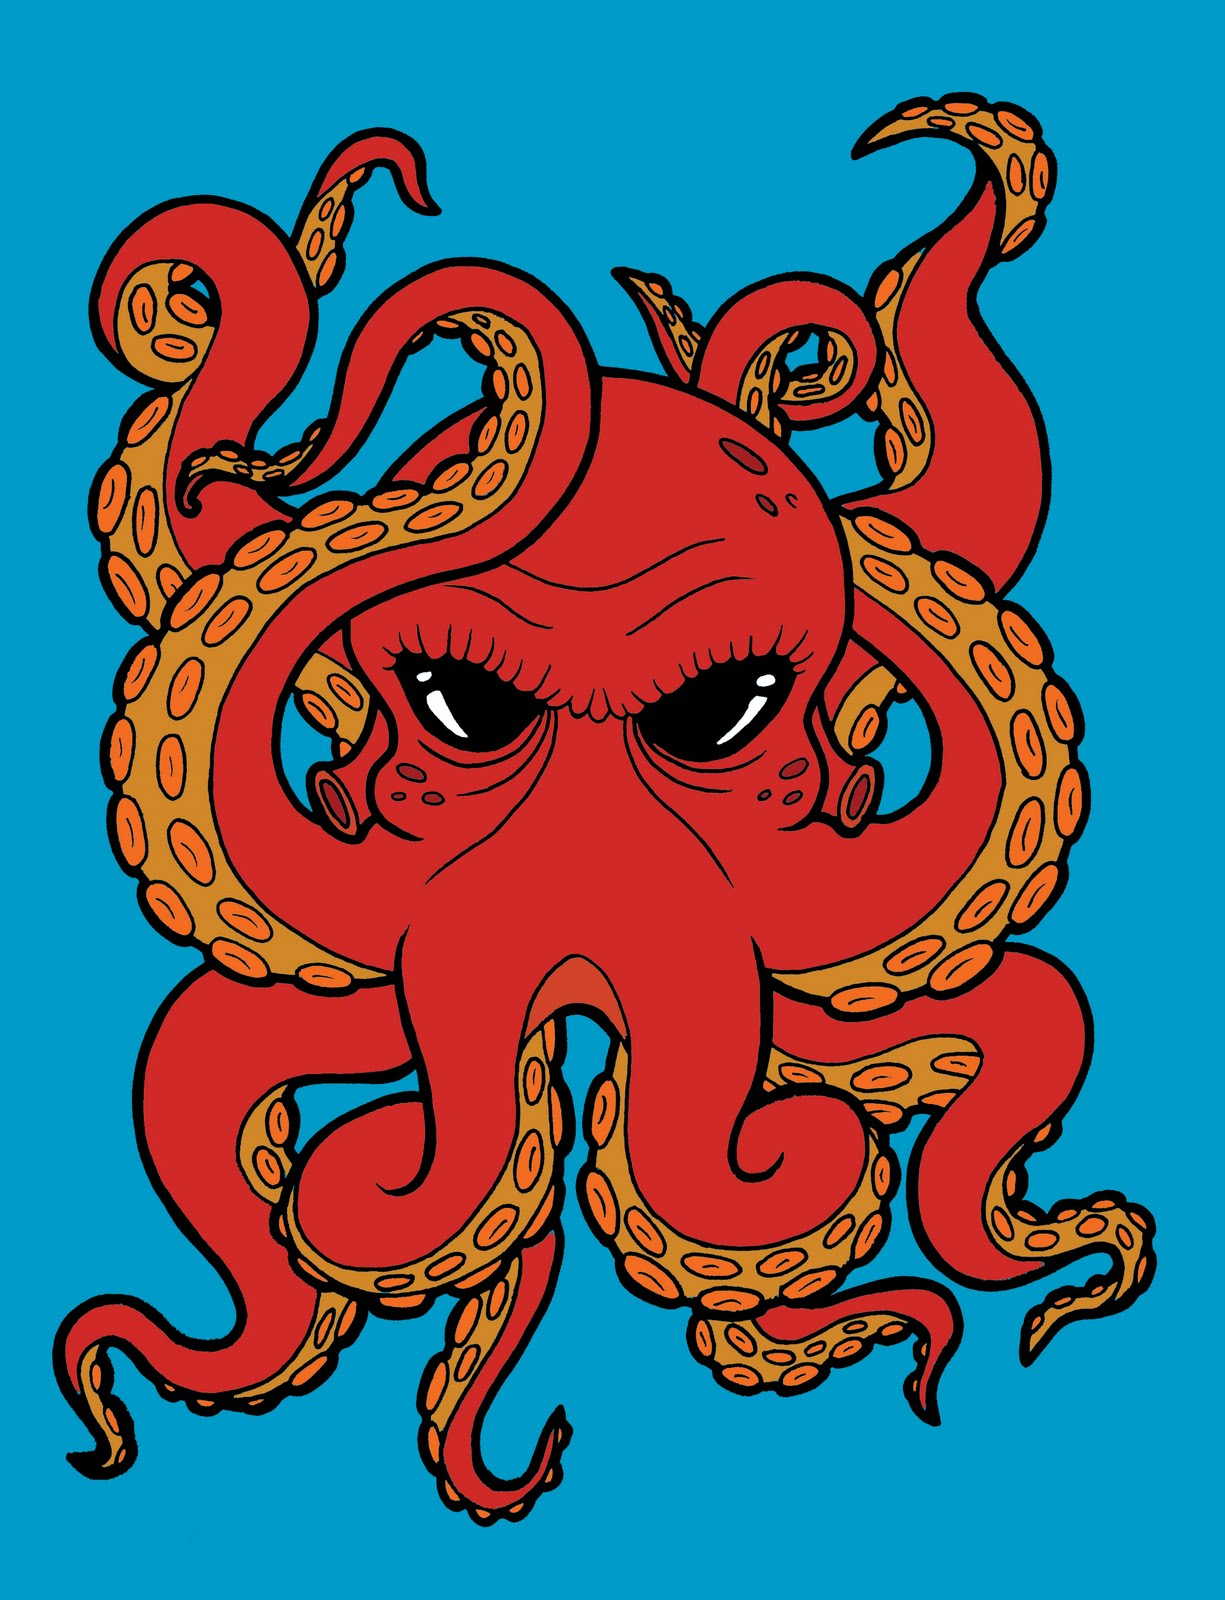 Octopus octopus drawing and drawings on pinterest for Octopus drawing easy